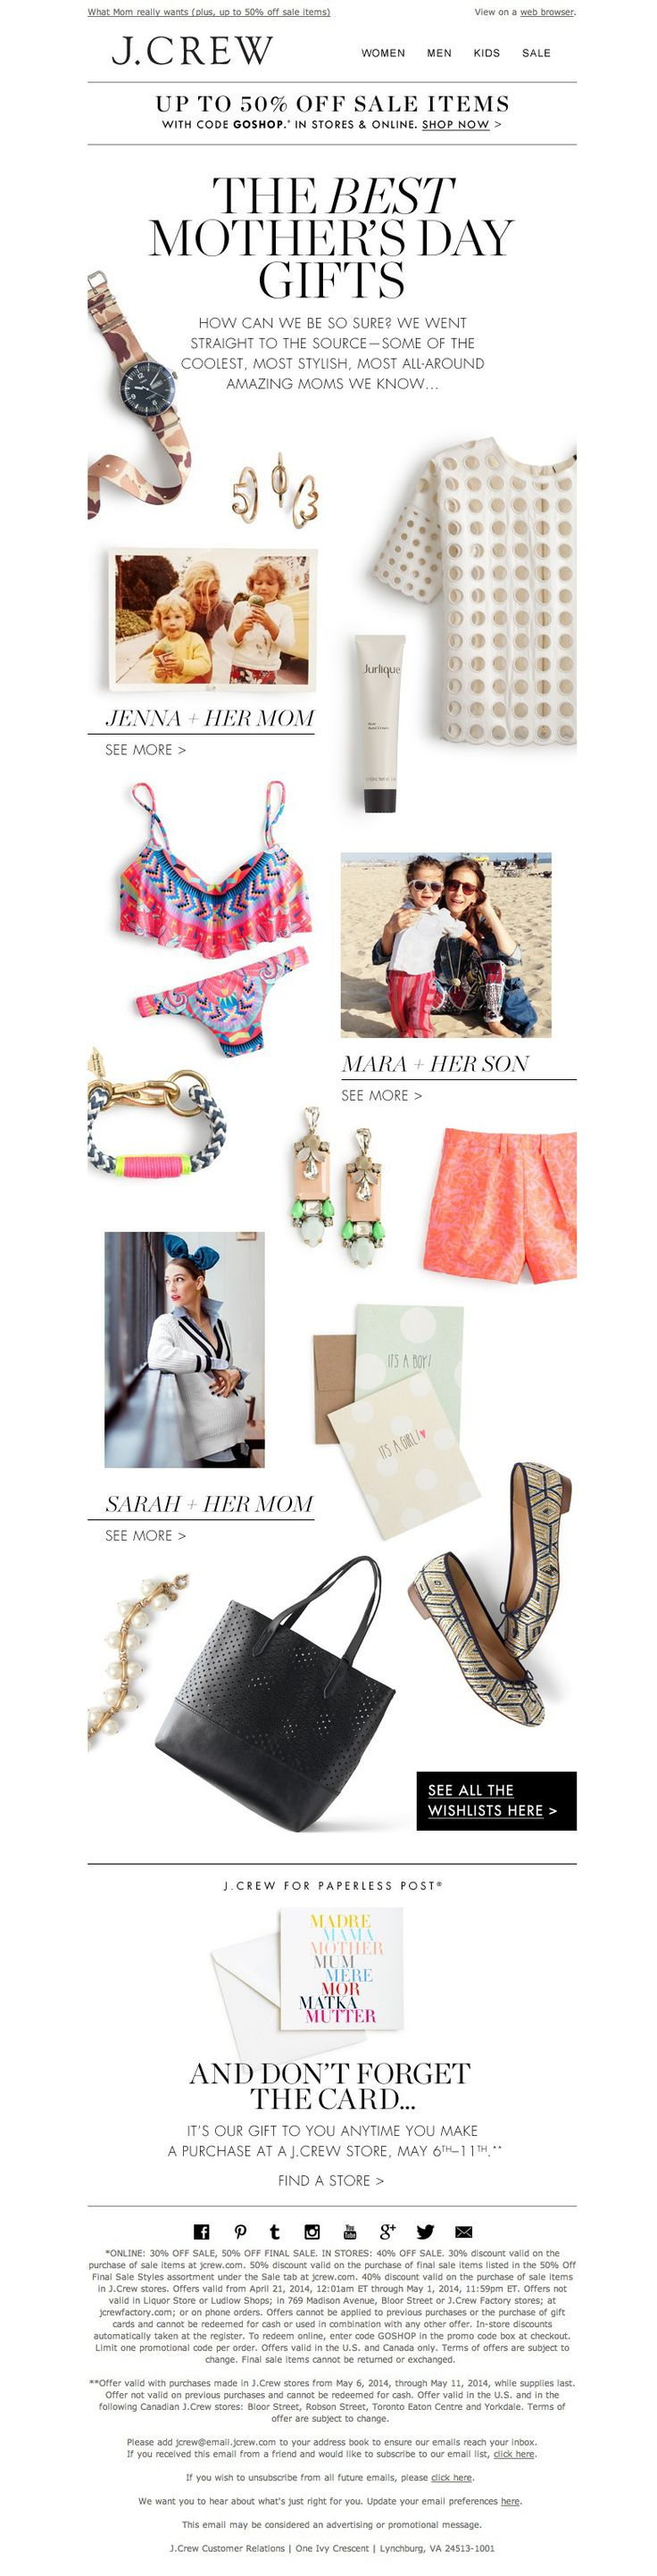 #newsletter #mothersday J.Crew 04.2014 It's almost Mother's Day www.datemailman.com